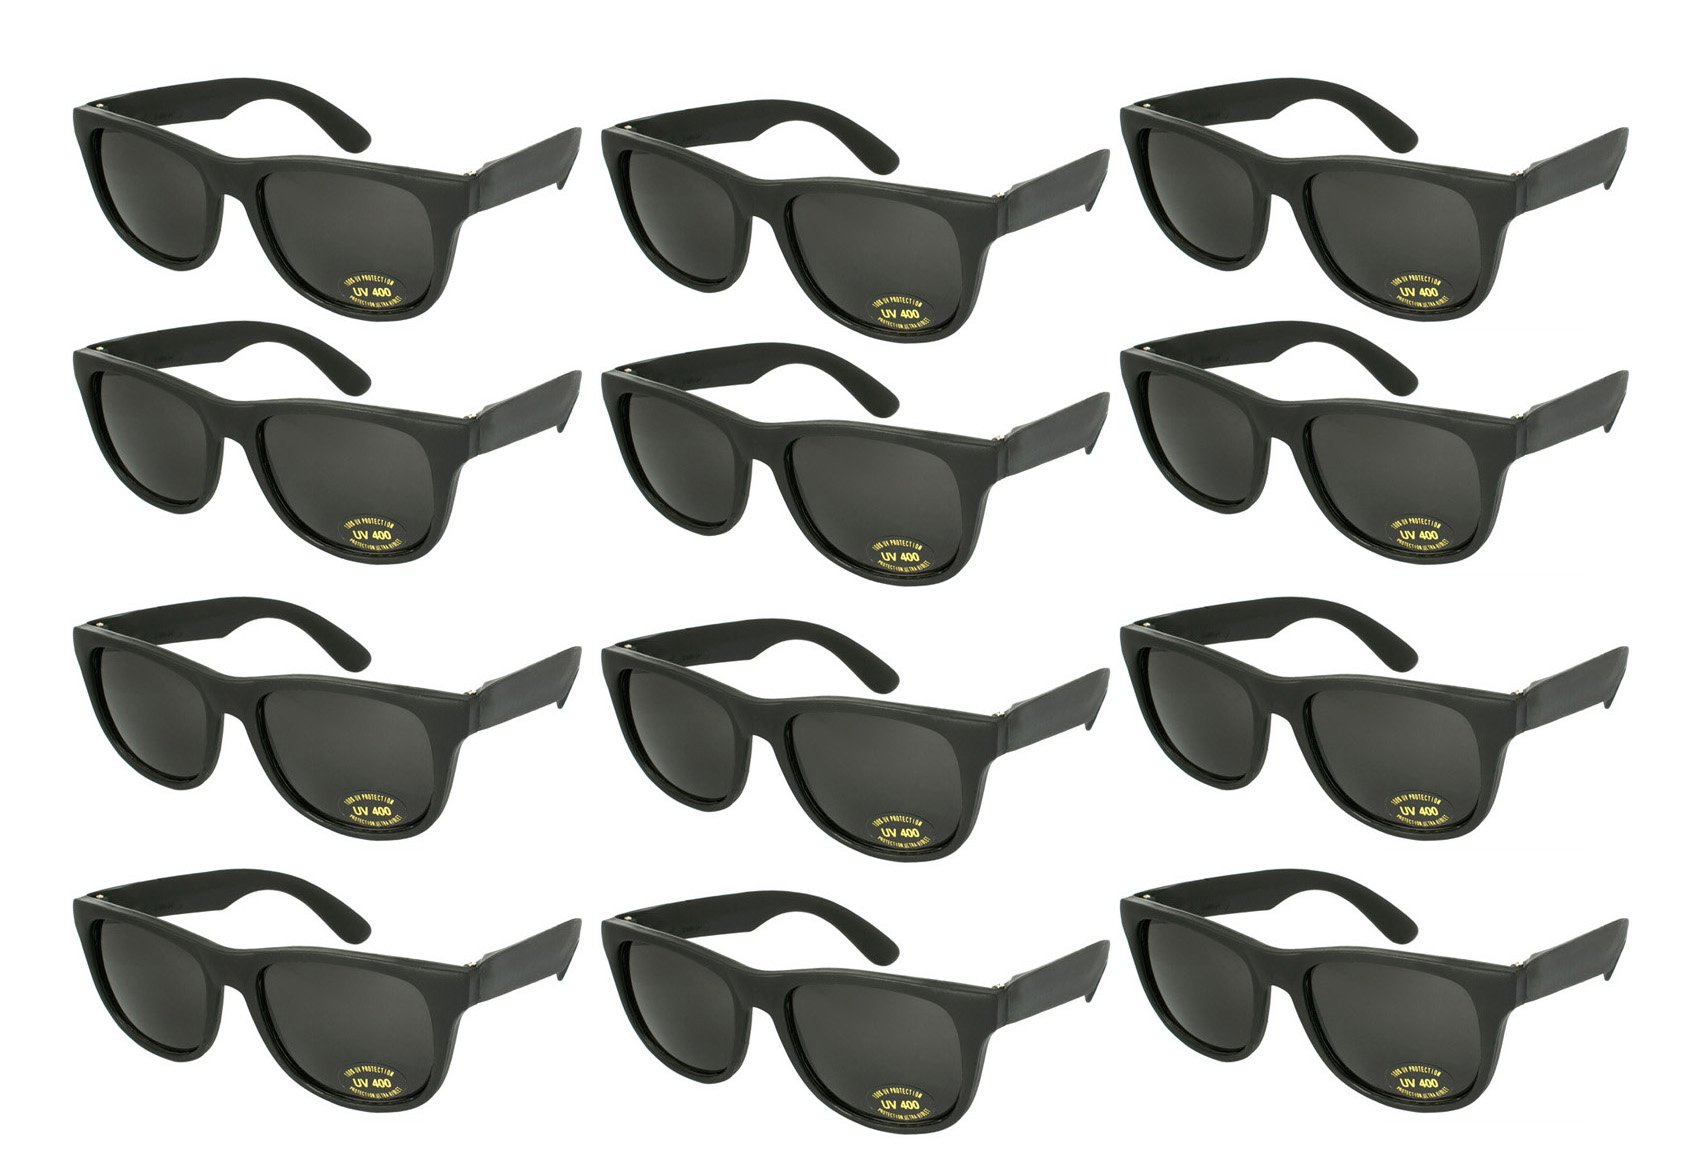 Edge I-Wear 12 Pack ADULT Party Neon Sunglasses CPSIA Certified Lead (Pb) Content Free 100% UV Protection (Made in Taiwan) 5402RA/BLK-12